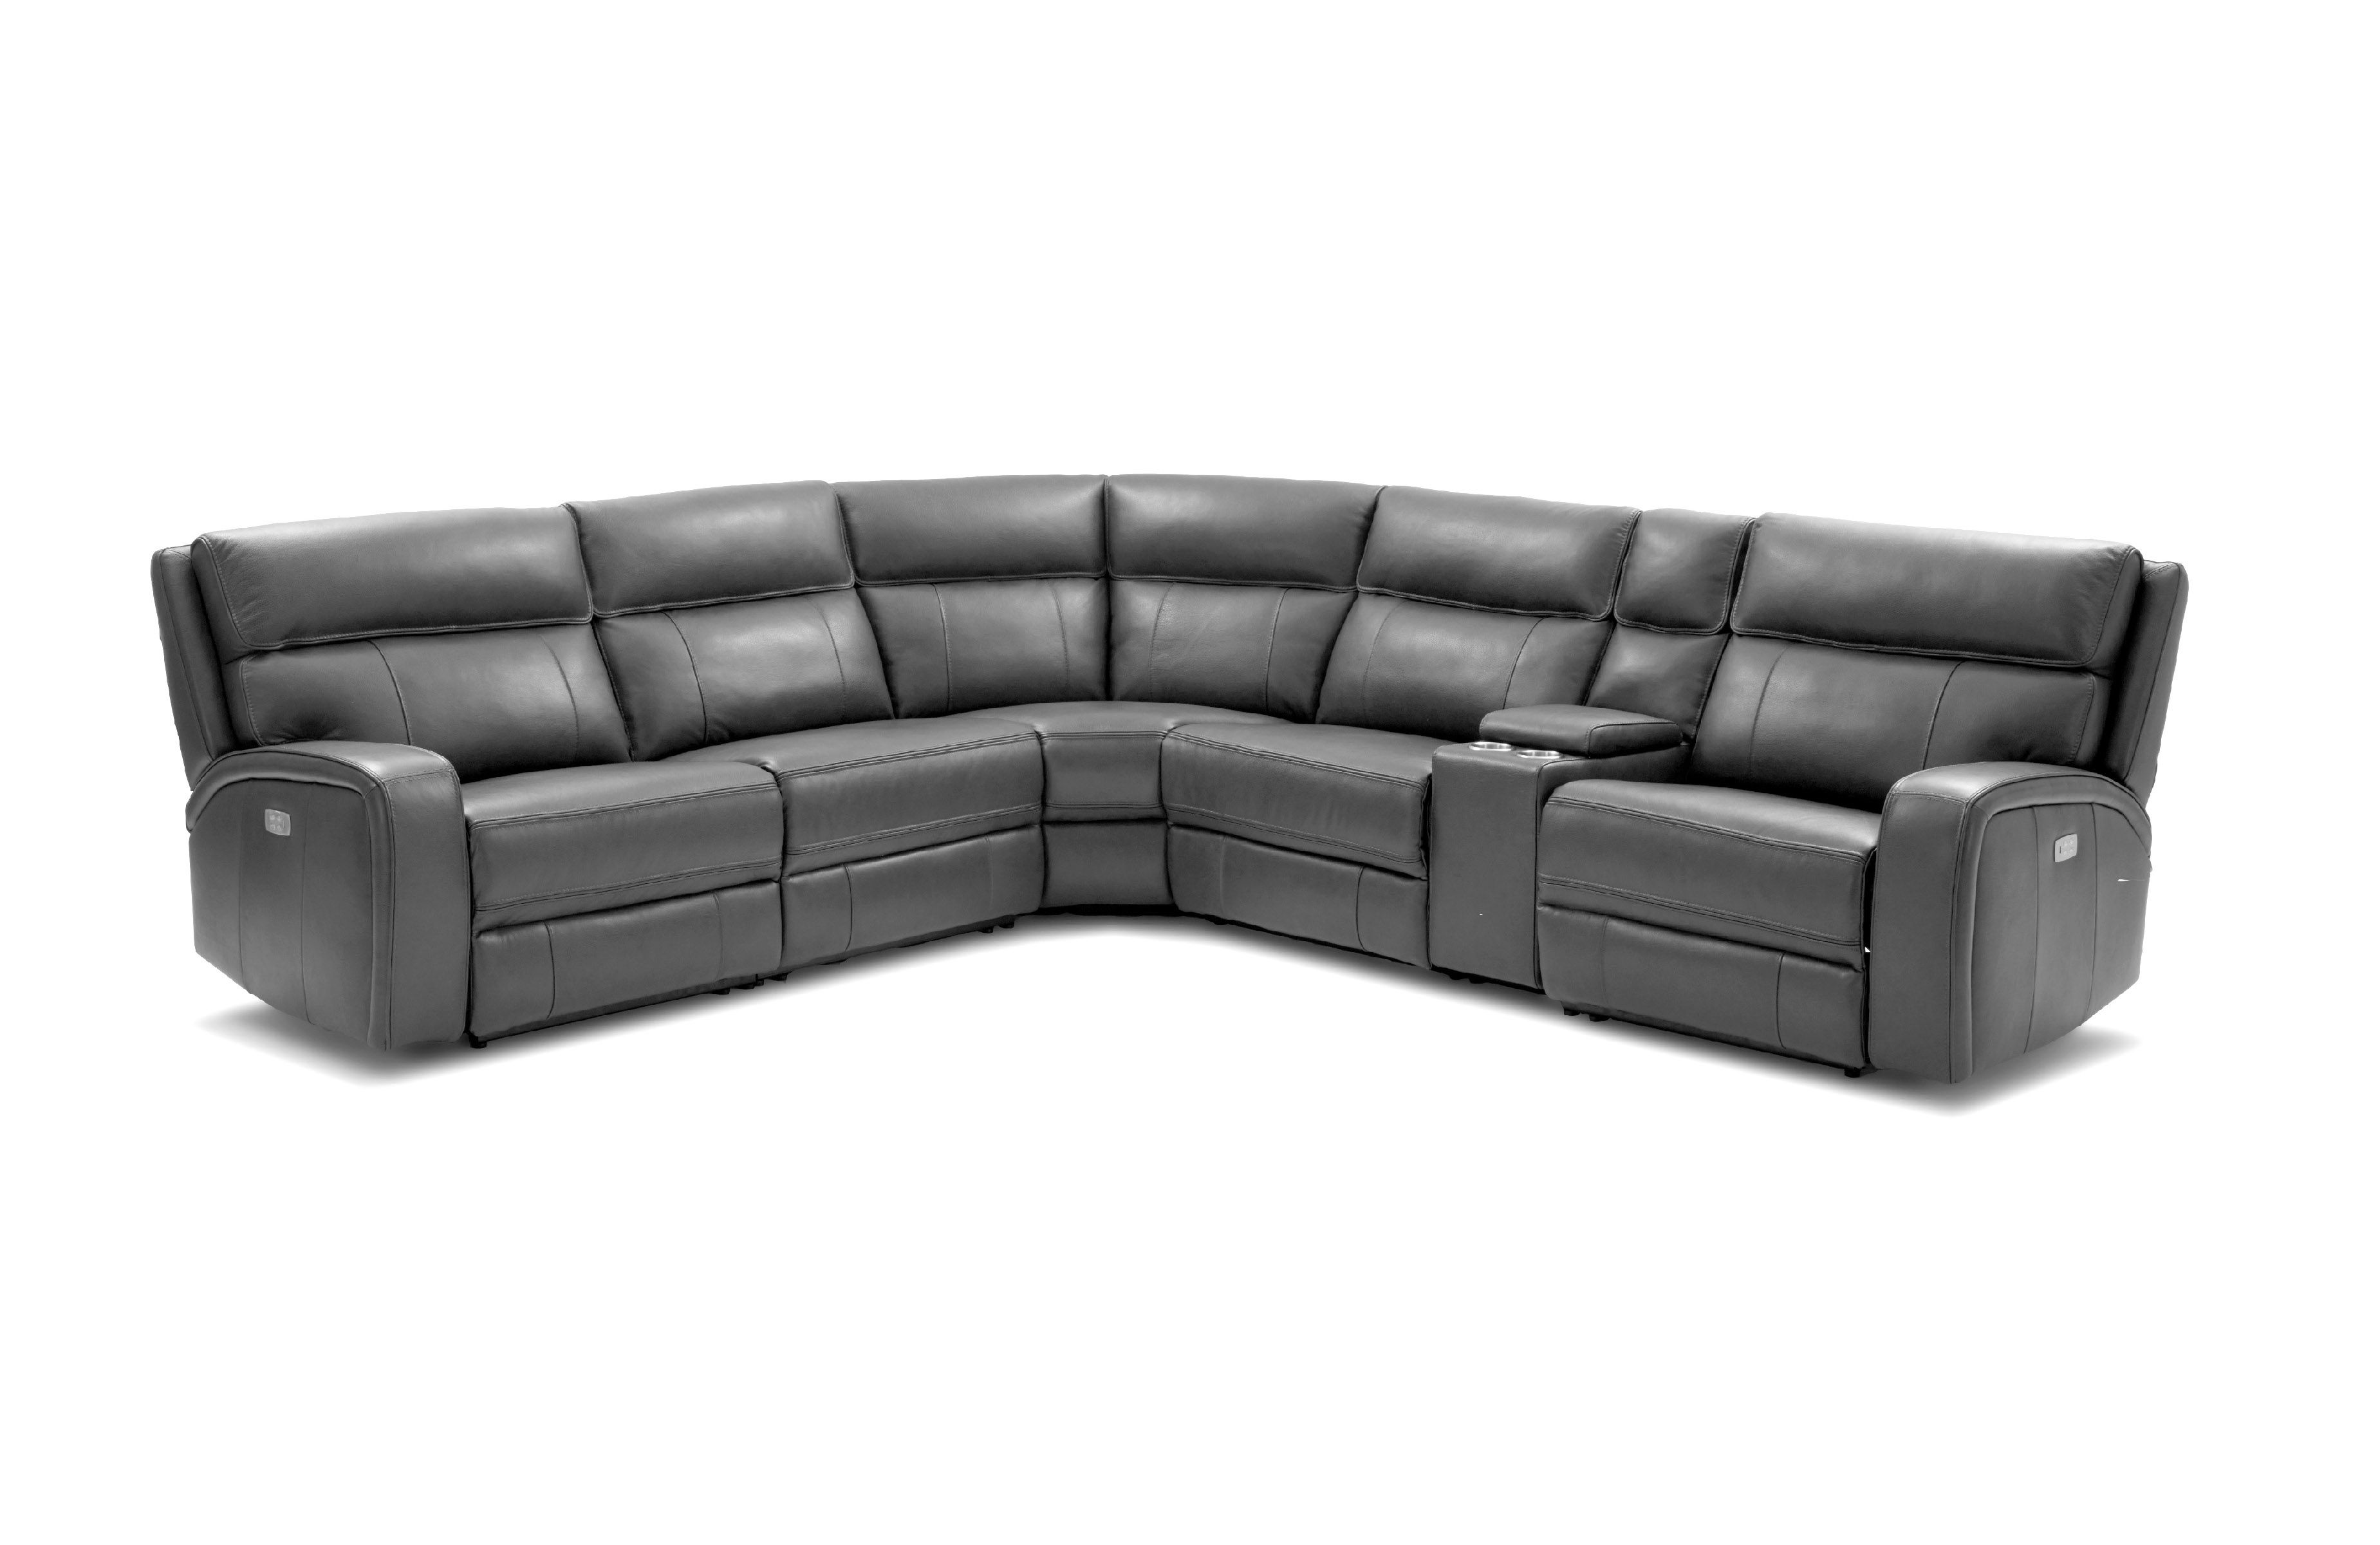 Advanced Adjustable Sectional Upholstered In Real Leather With End Table Italian Leather Sectional Sofa Leather Sectional Sofa Corner Sectional Sofa